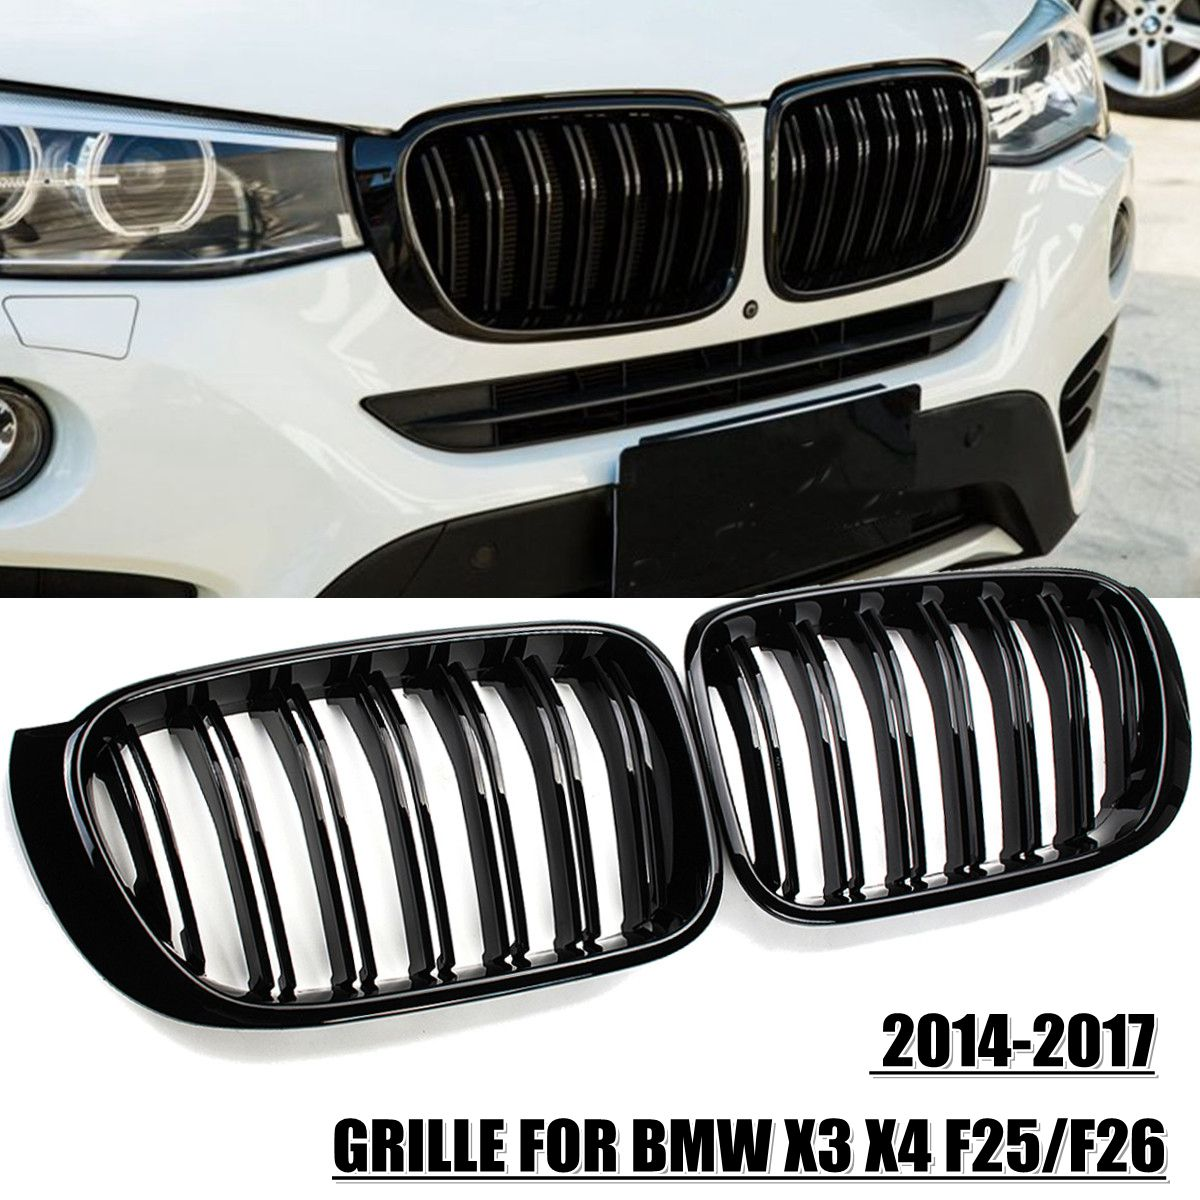 2Pcs M Style Car Front Grille Grill Mesh Net Trim Strip Cover Gloss Black For BMW X3 X4 F25/F26 2014 2015 2016 2017